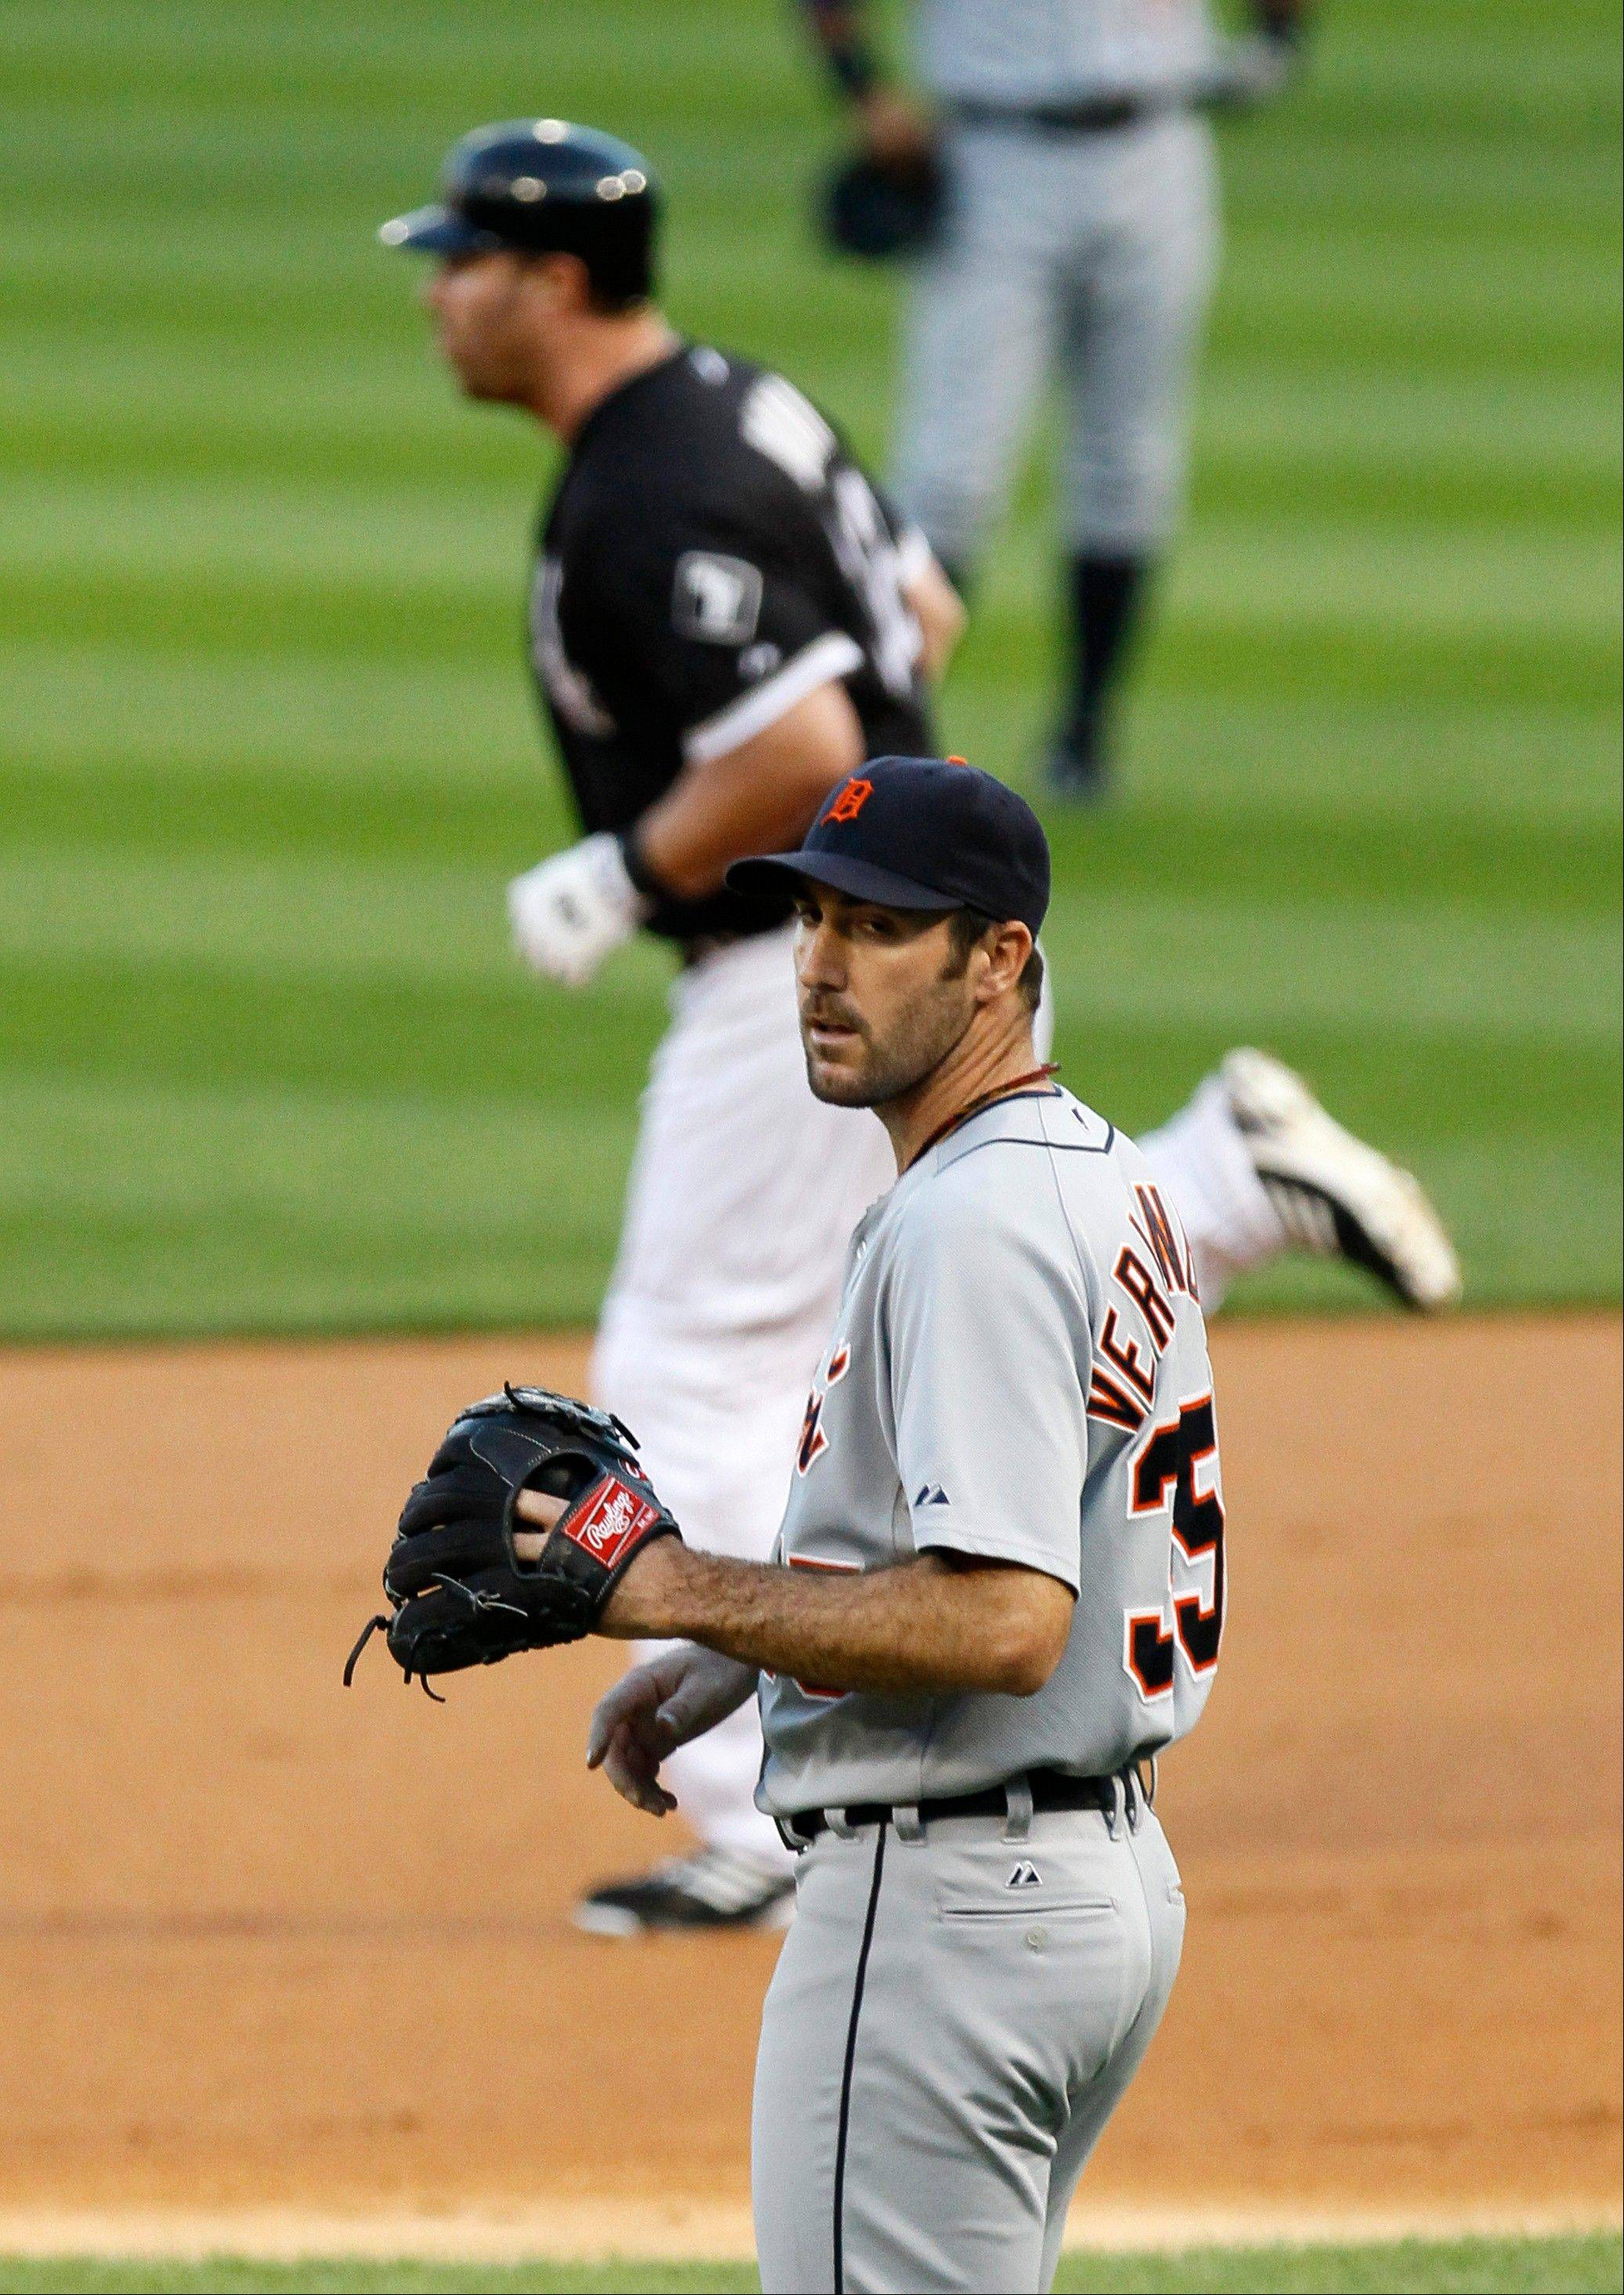 Things looked promising for the White Sox in the first inning when Tigers starter Justin Verlander allowed a 2-run homer to Adam Dunn.